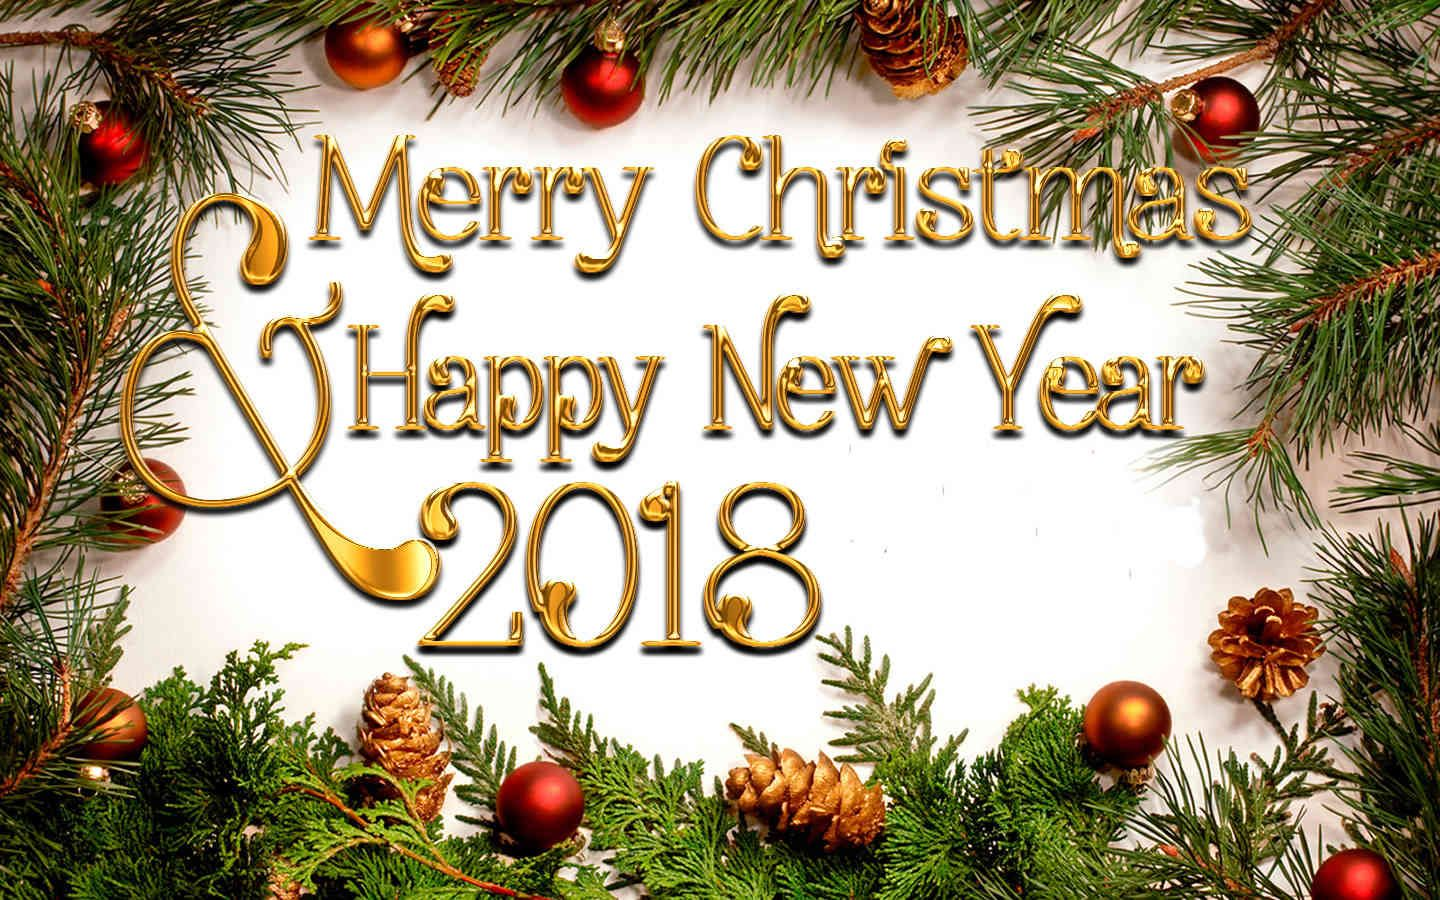 Merry Christmas And Happy New Year Sms 2018 Jamal Al Salah